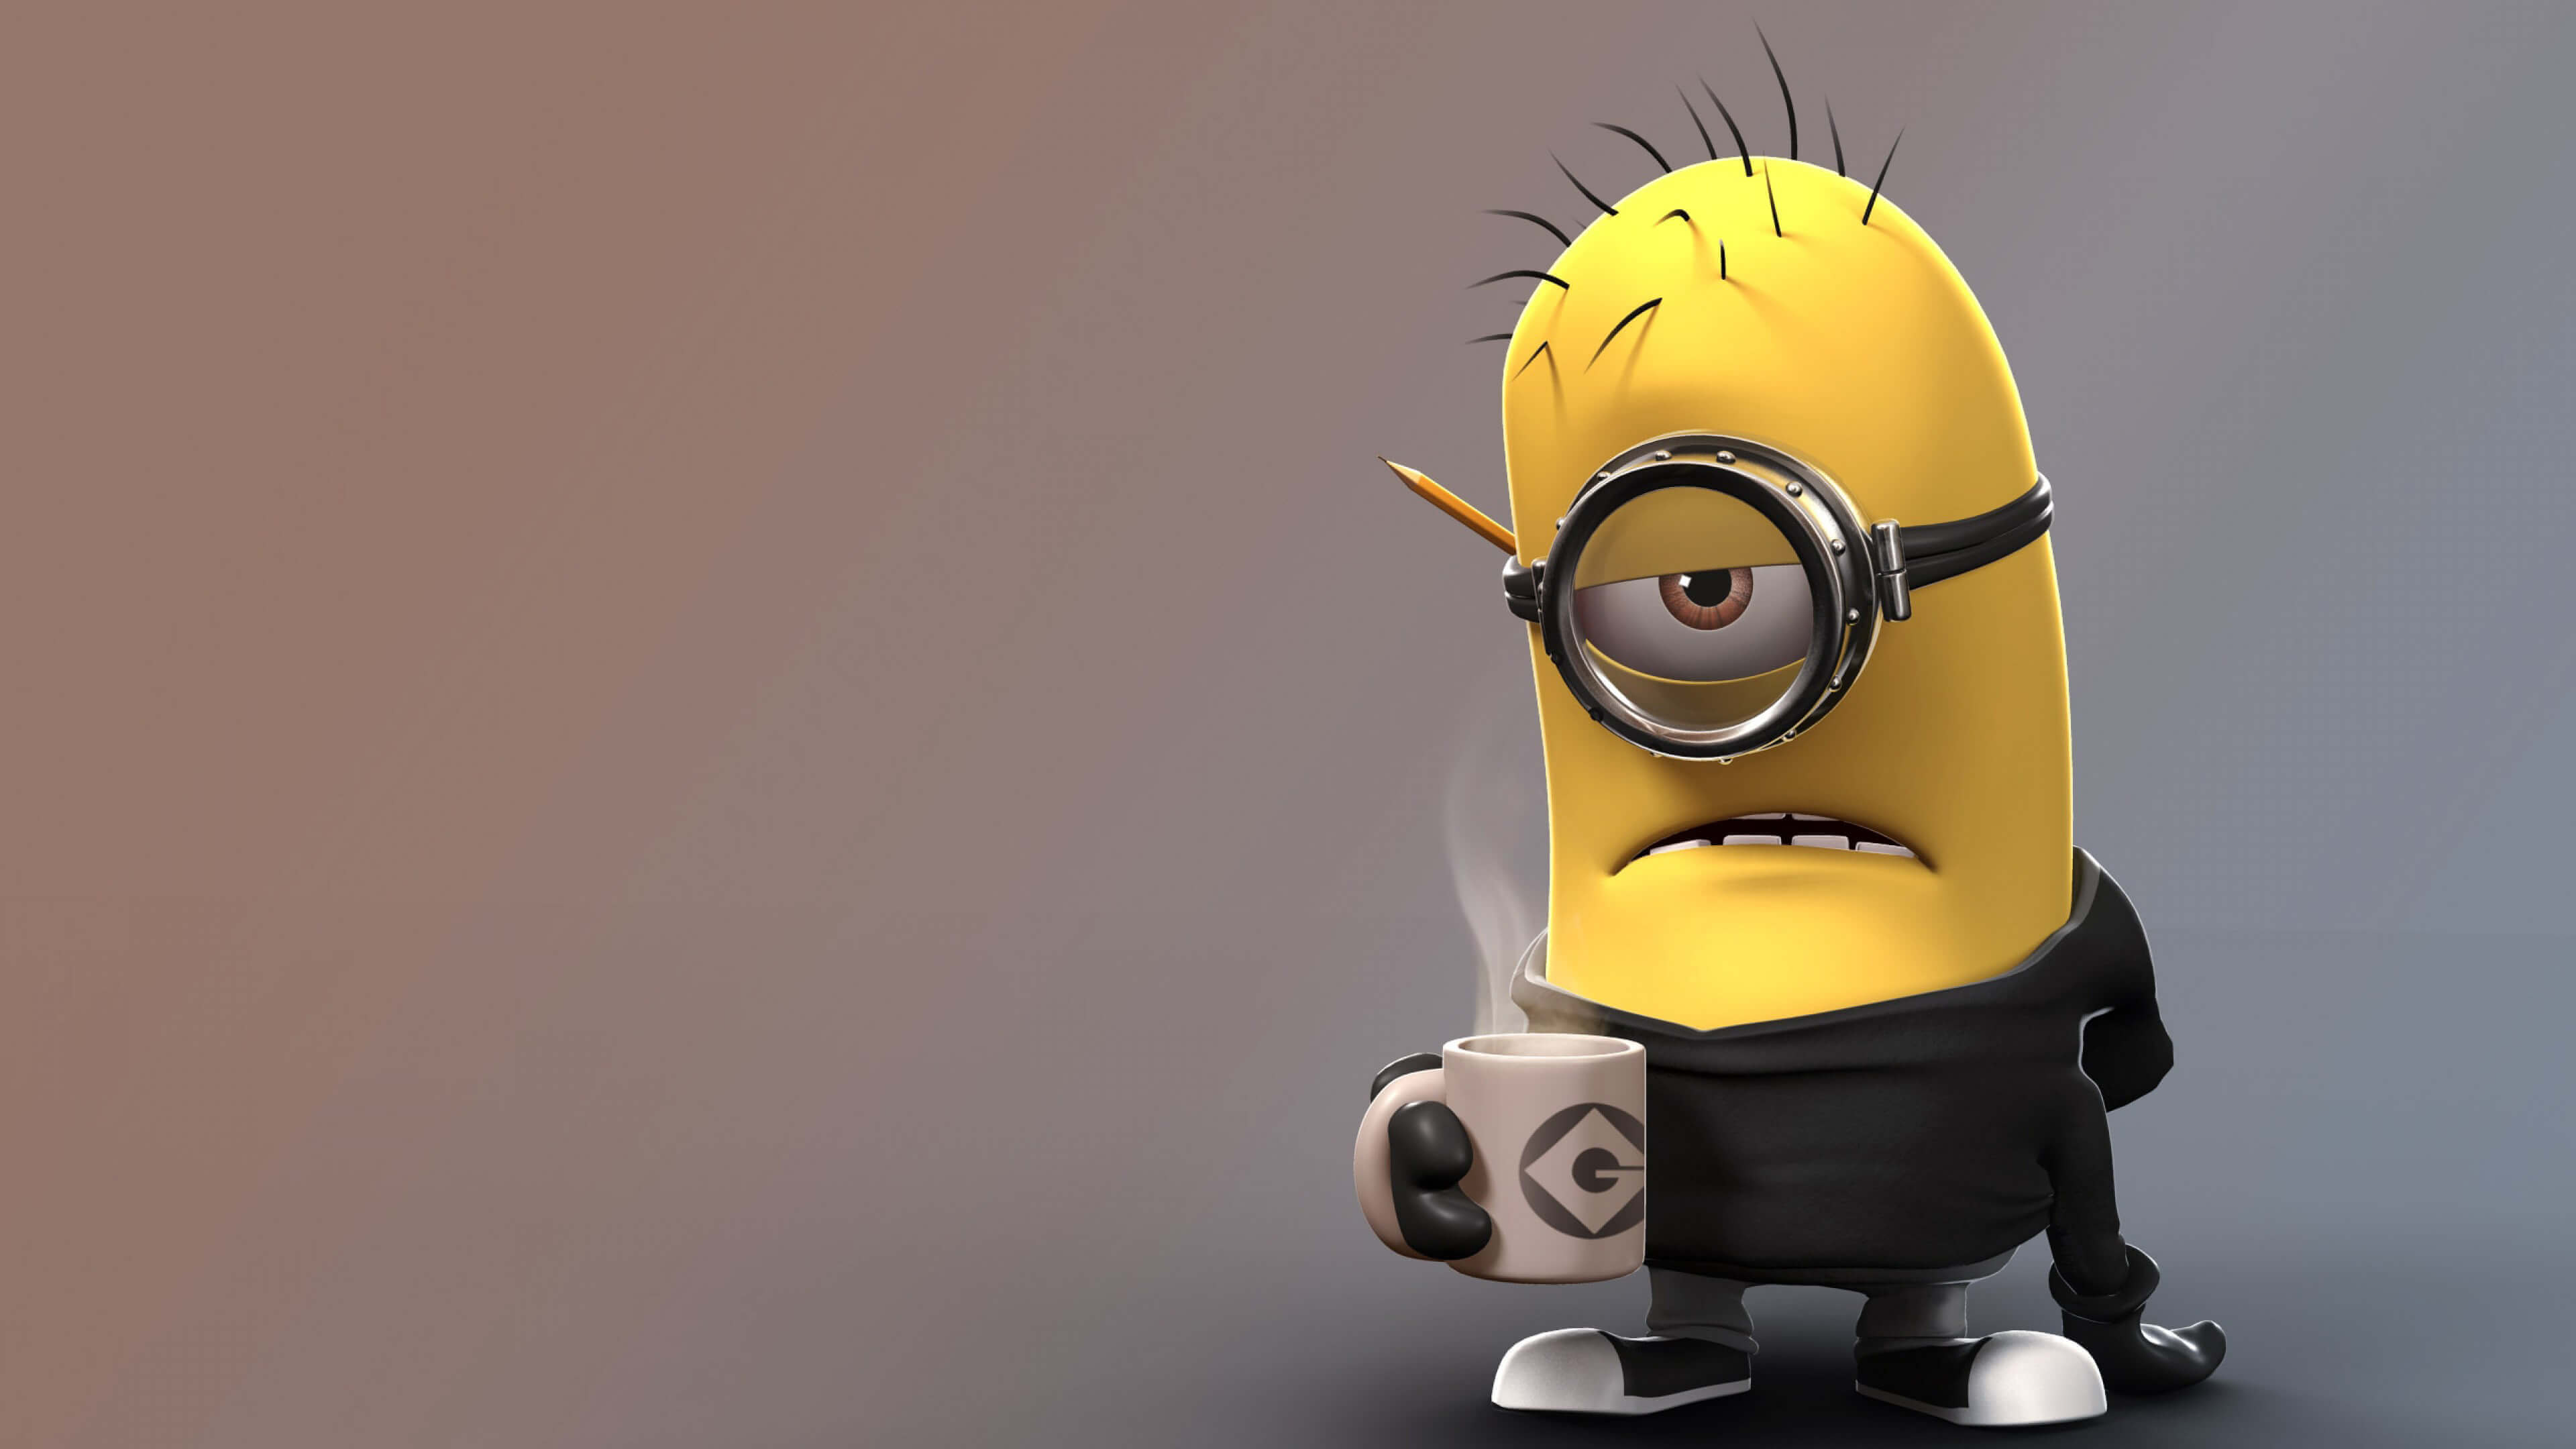 1920x1080 Despicable Me Angry Minion Laptop Full HD 1080P